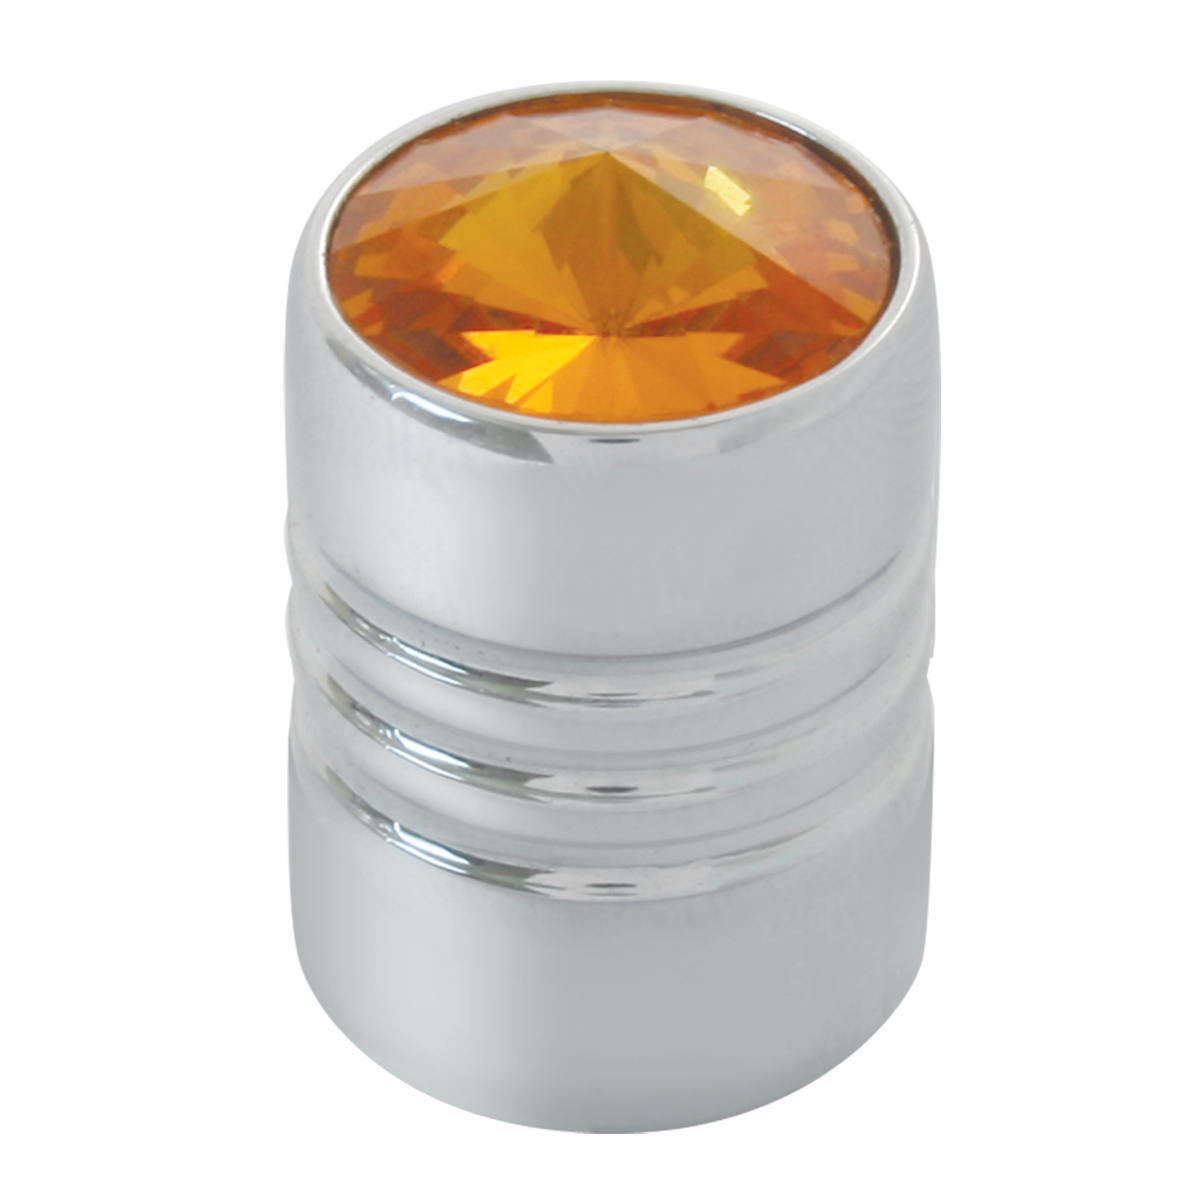 #50870 Tire Valve Stem Cover with Amber Crystal on Top